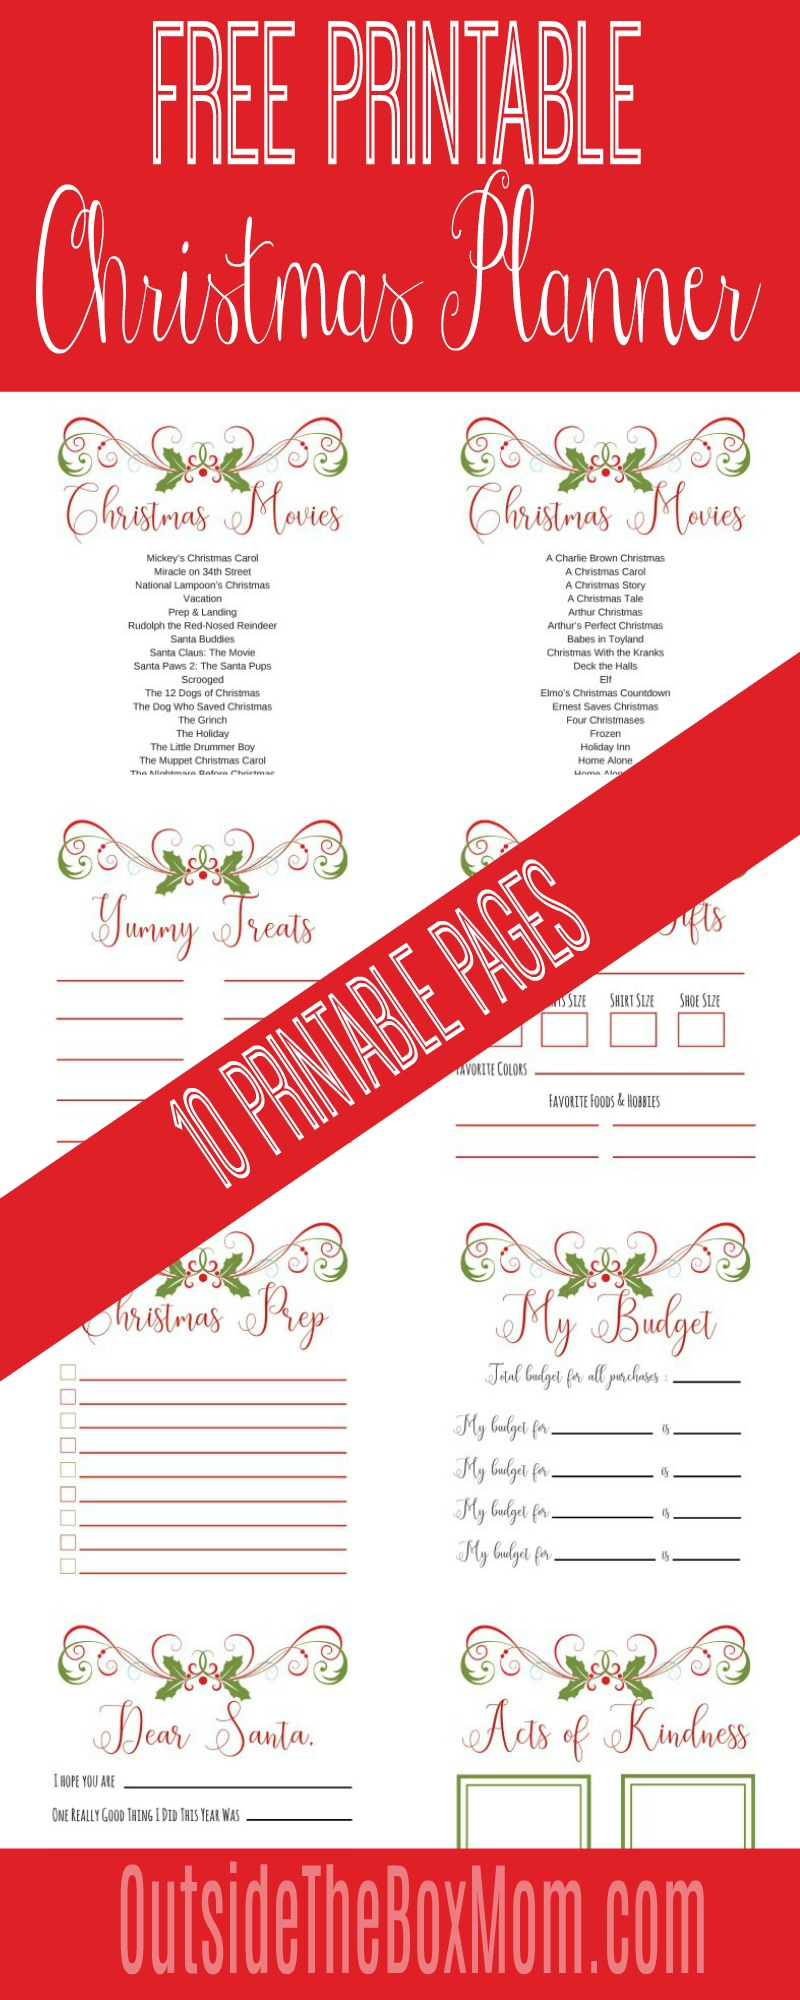 photograph regarding Free Christmas Planner Printables named The Final Xmas Planner - Doing work Mother Weblog Outdoors